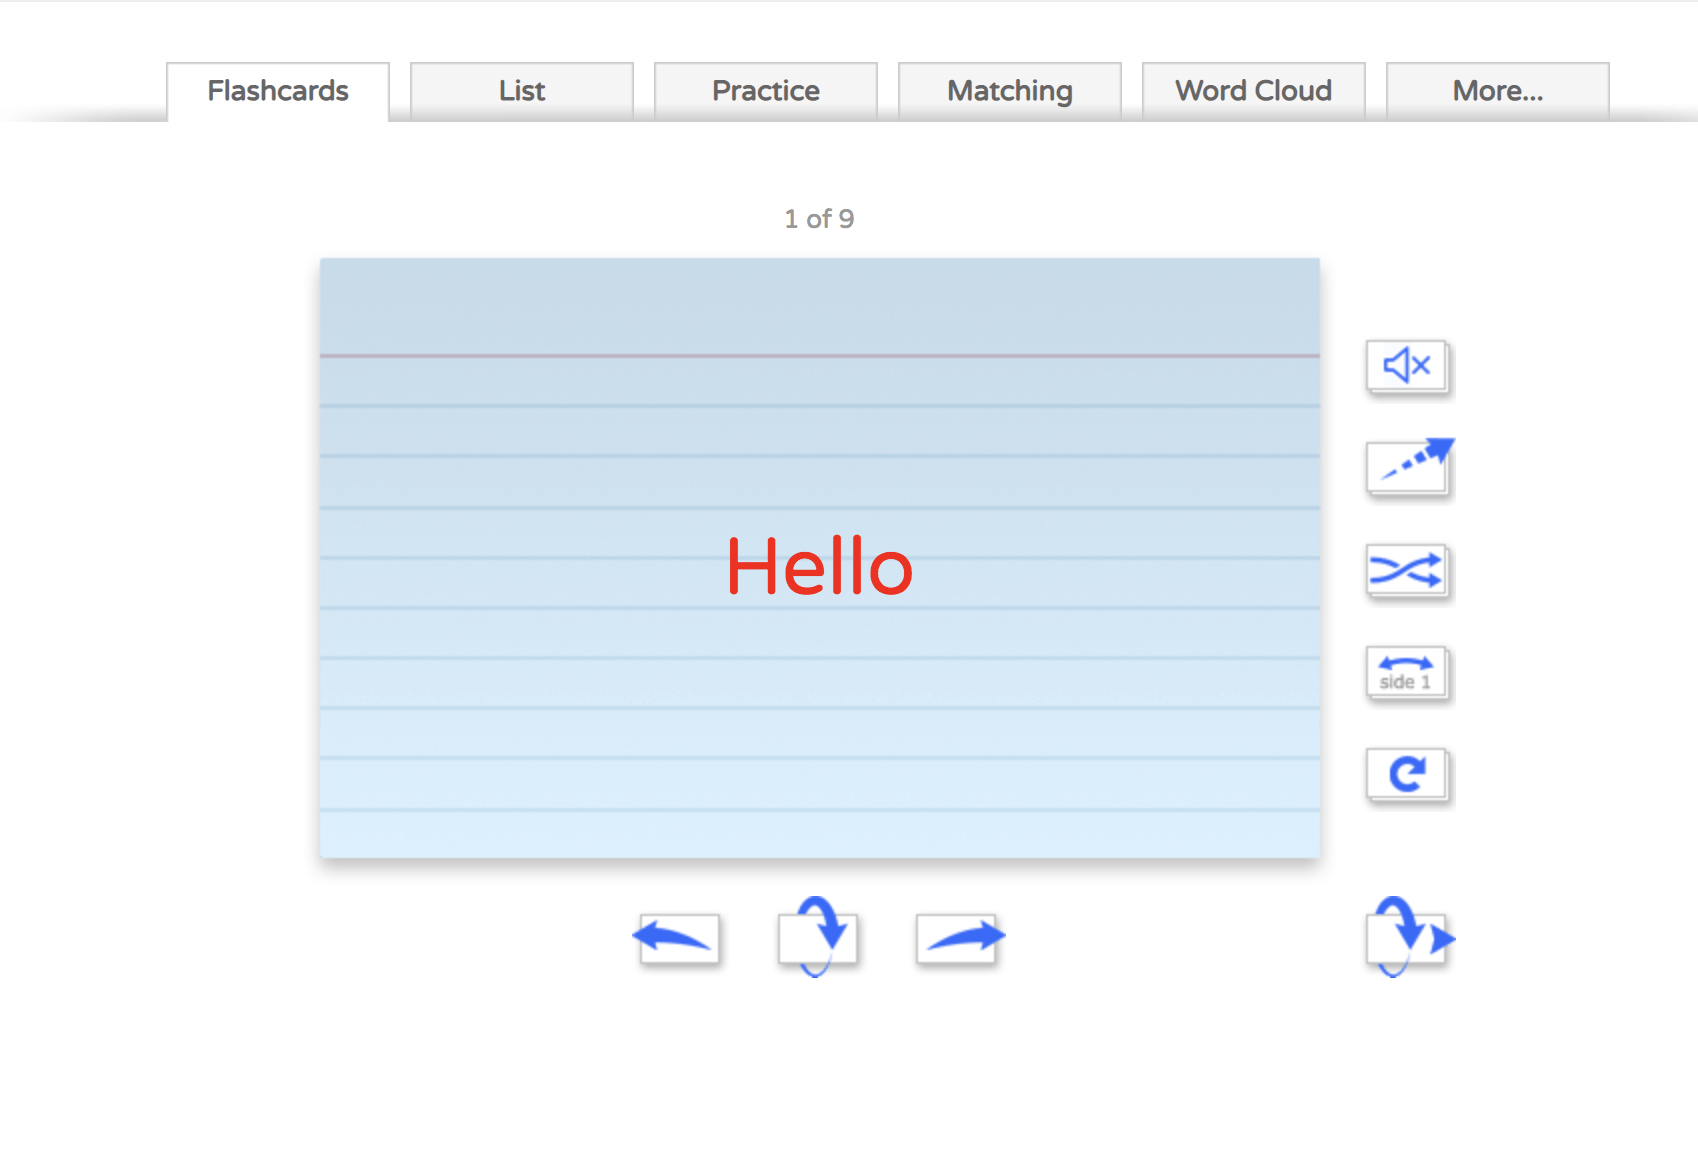 Flippity: Flashcard Saying Hello